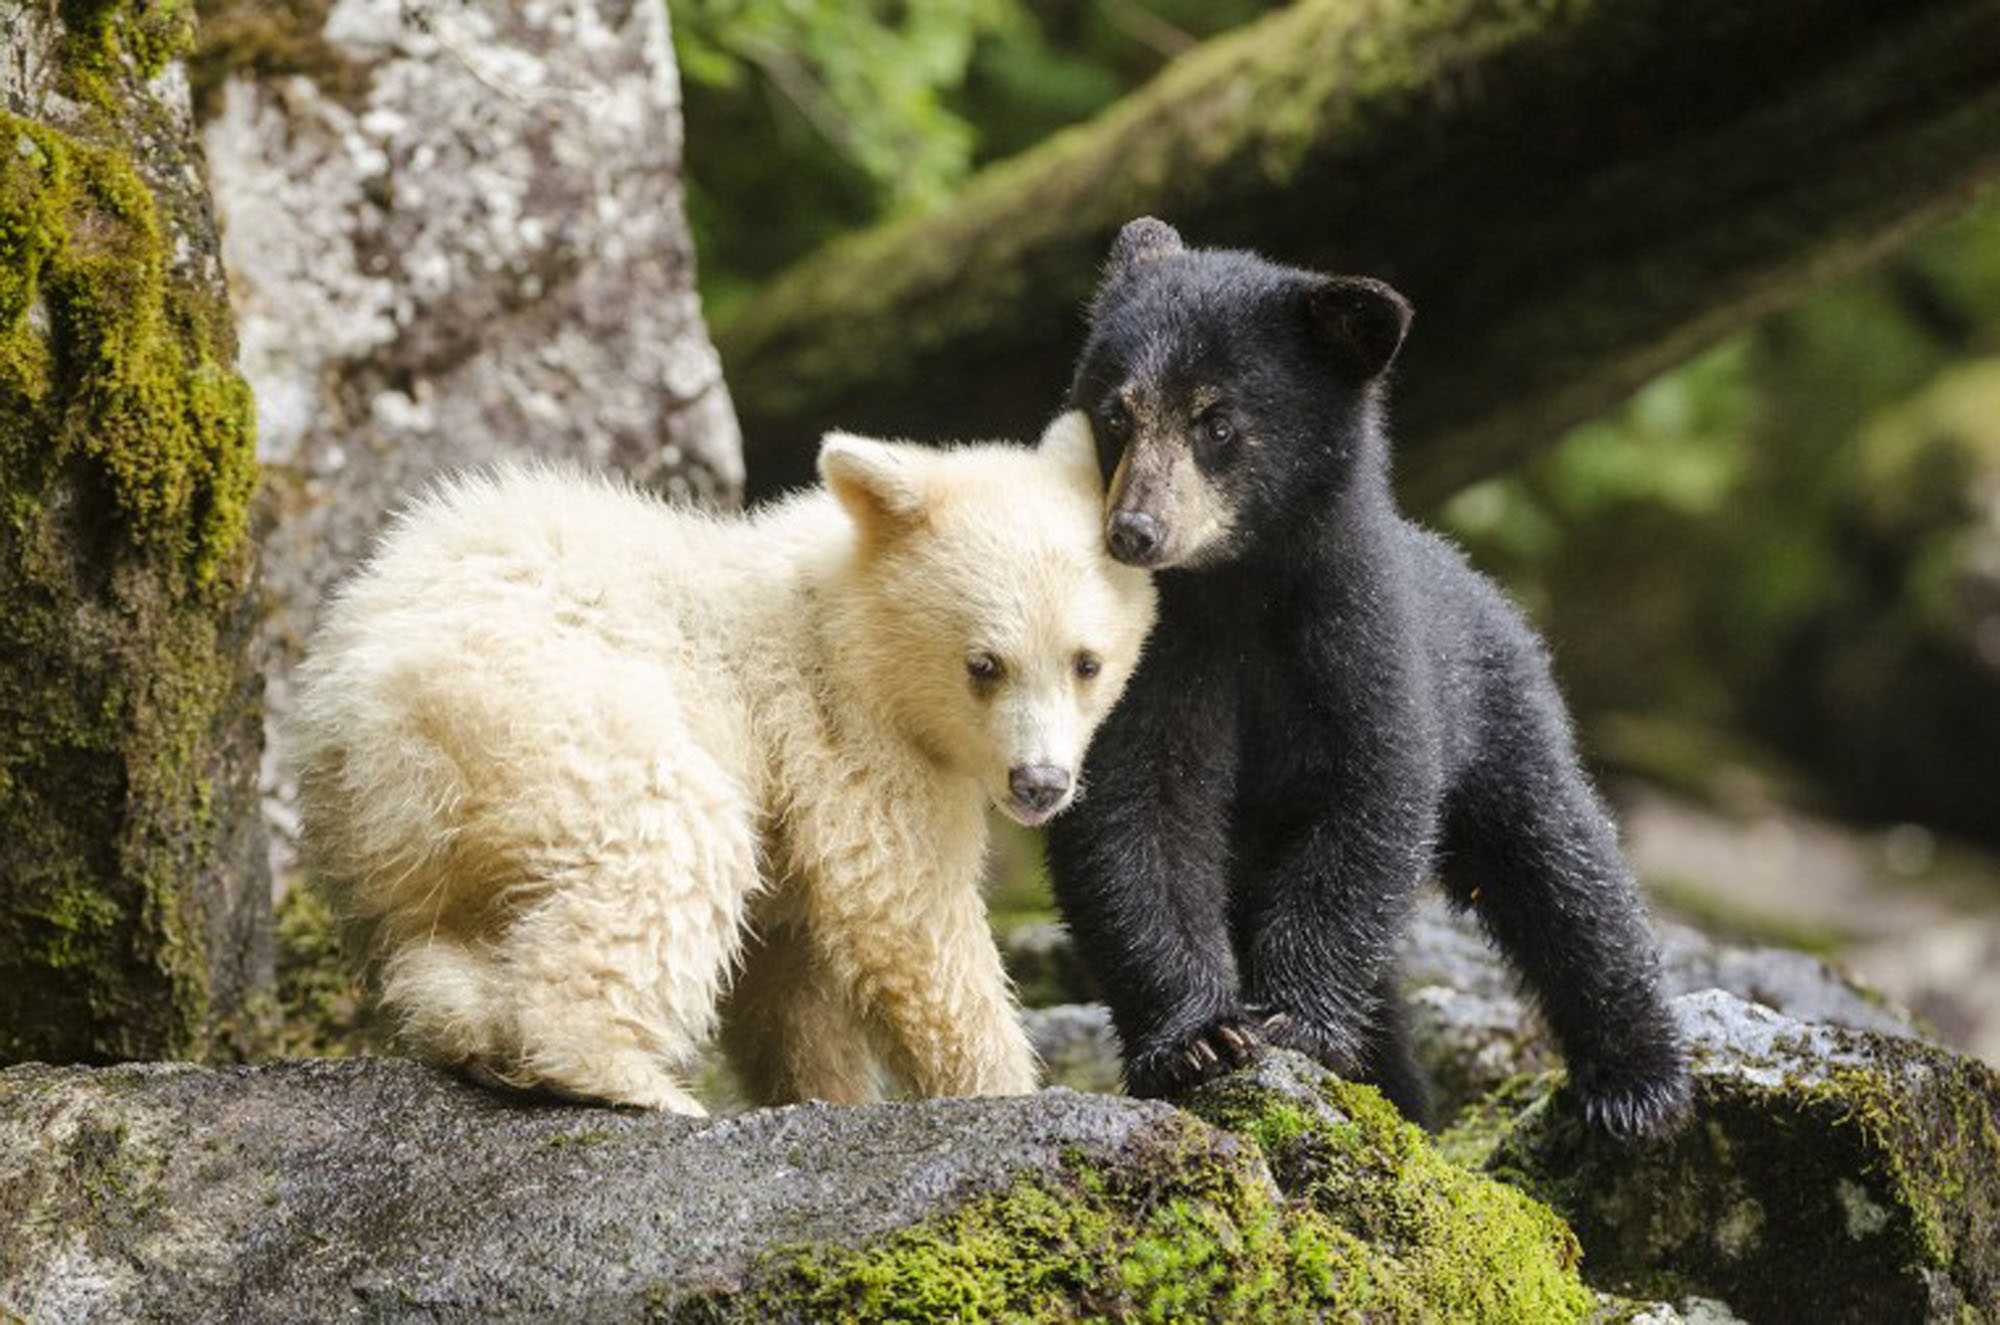 British Colombia - The Great Bear Rainforest